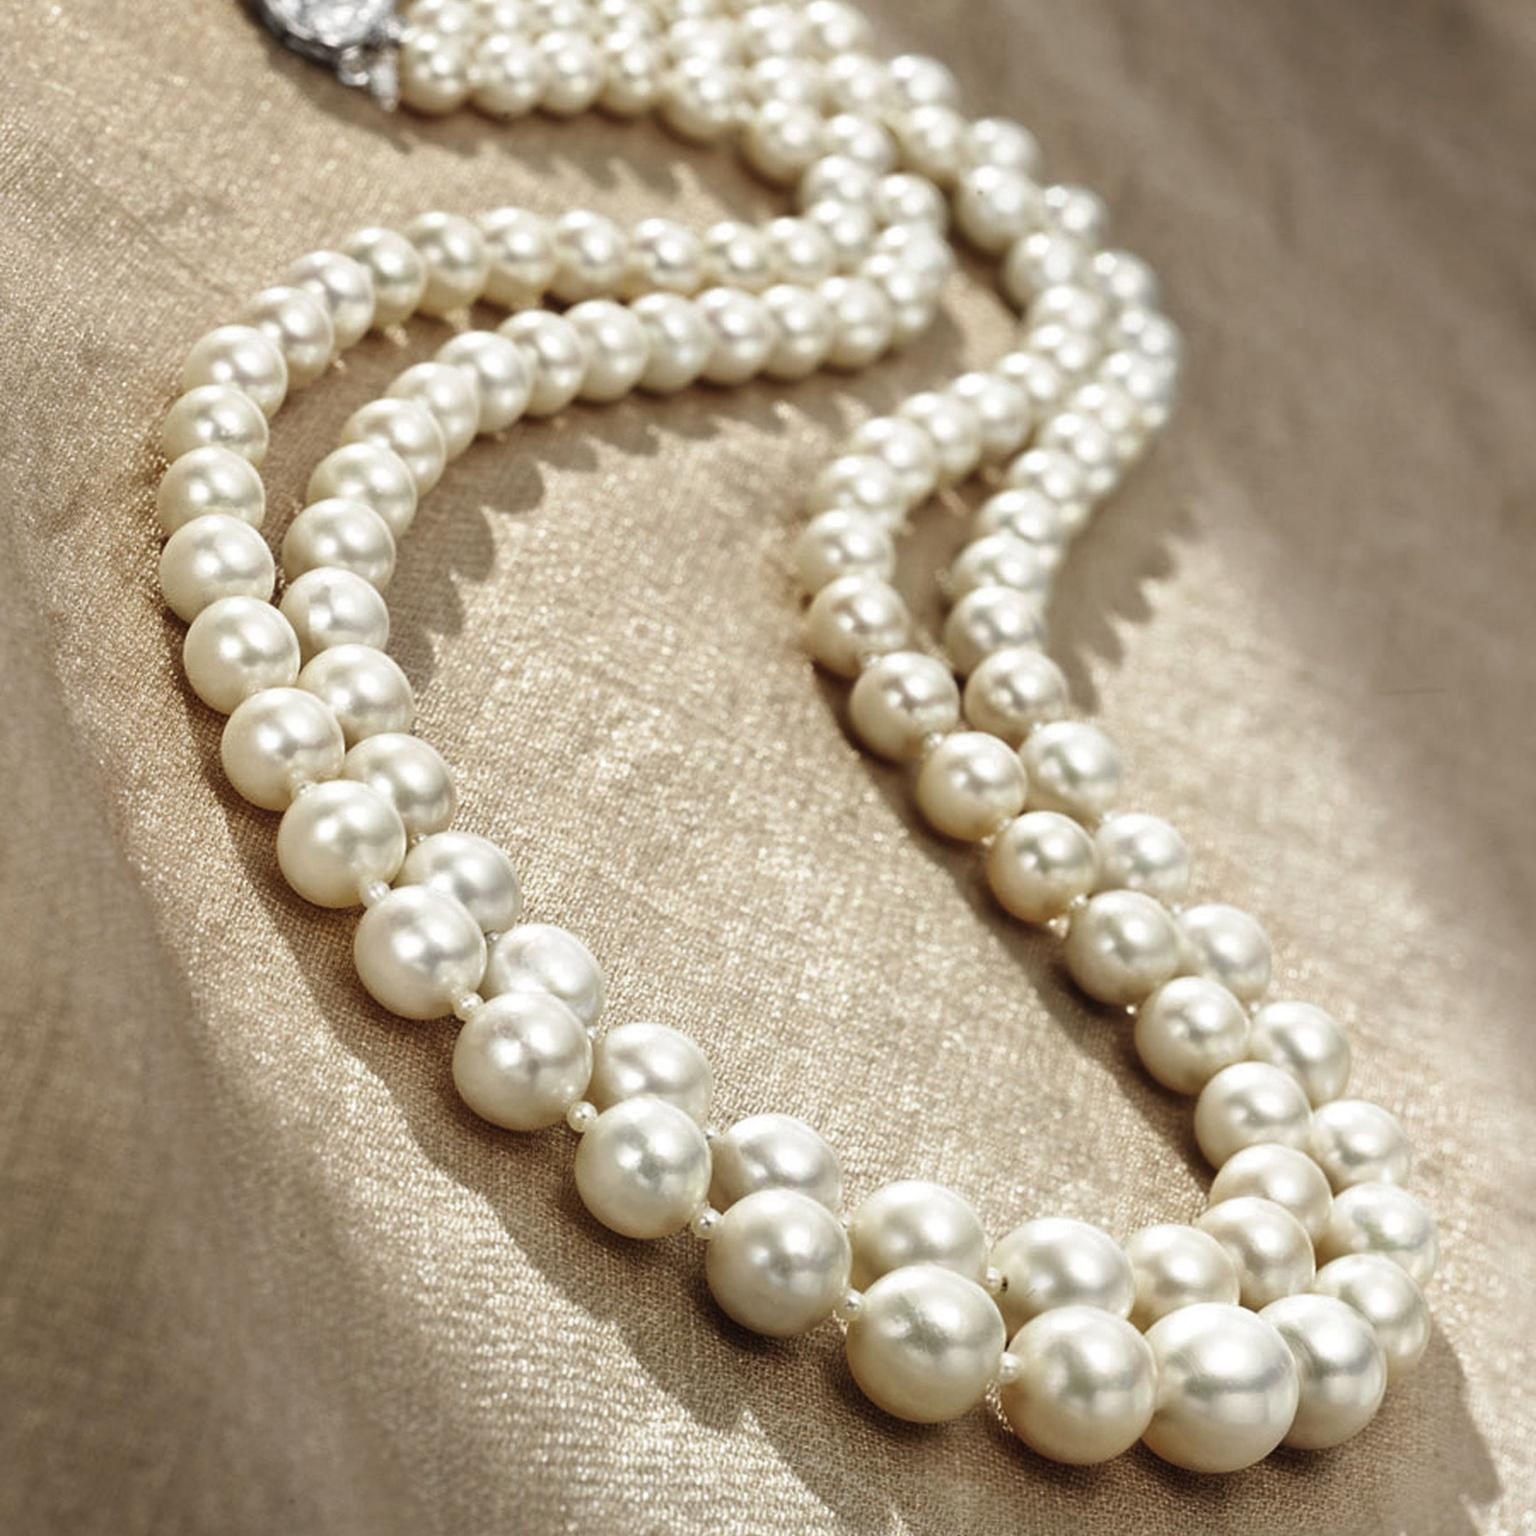 Christies double strand natural pearl necklace